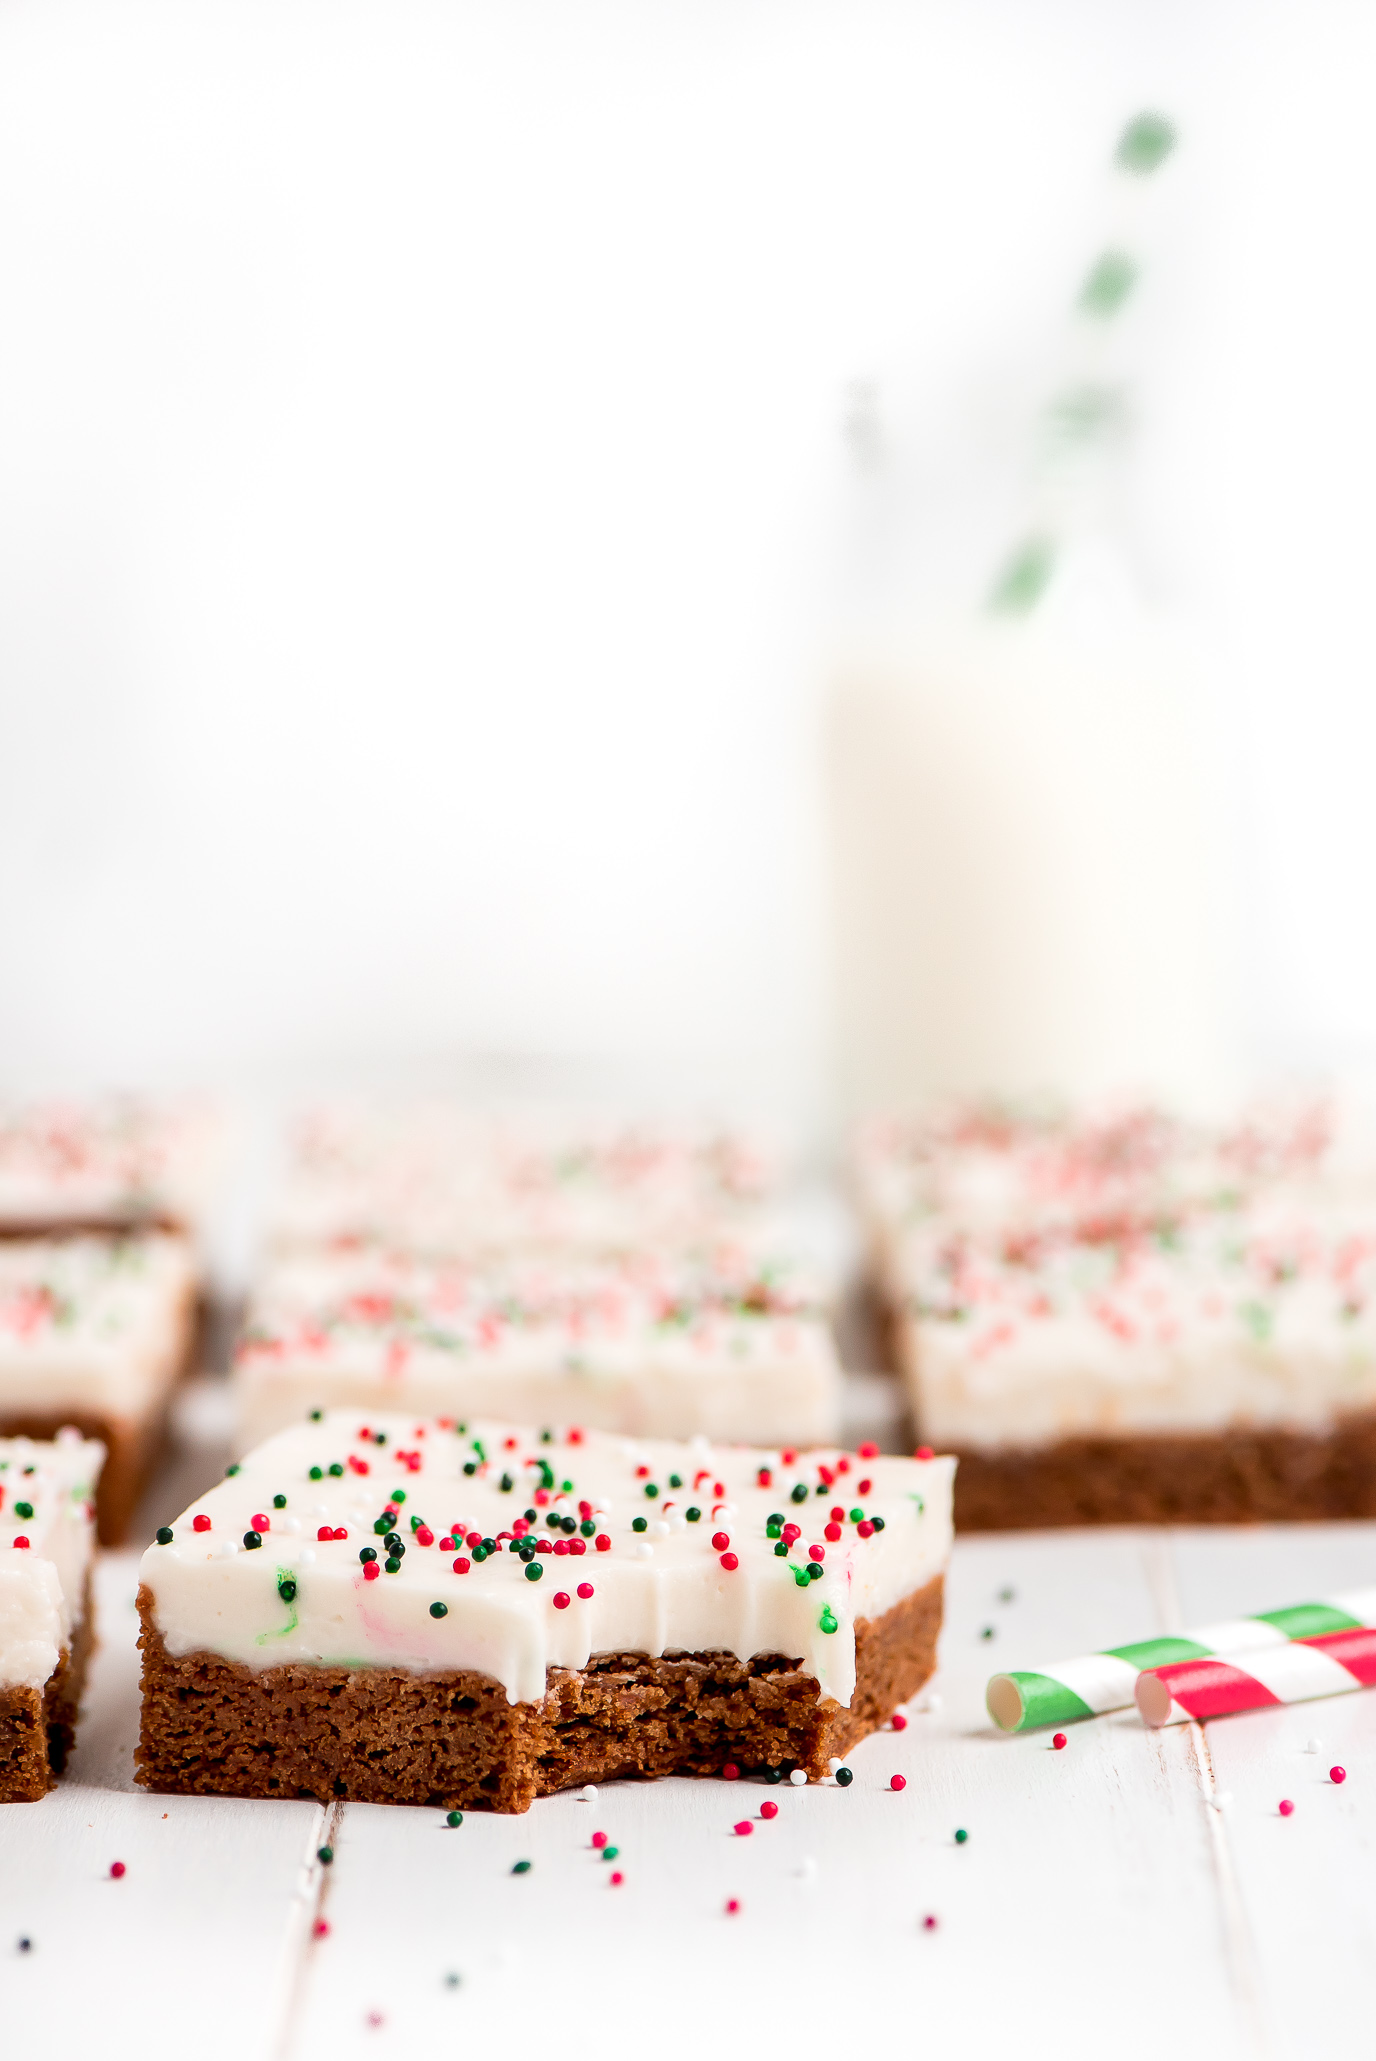 Gingerbread Sugar Cookie Bars frosted with cream cheese frosting and sprinkled with red, white, and green sprinkles.